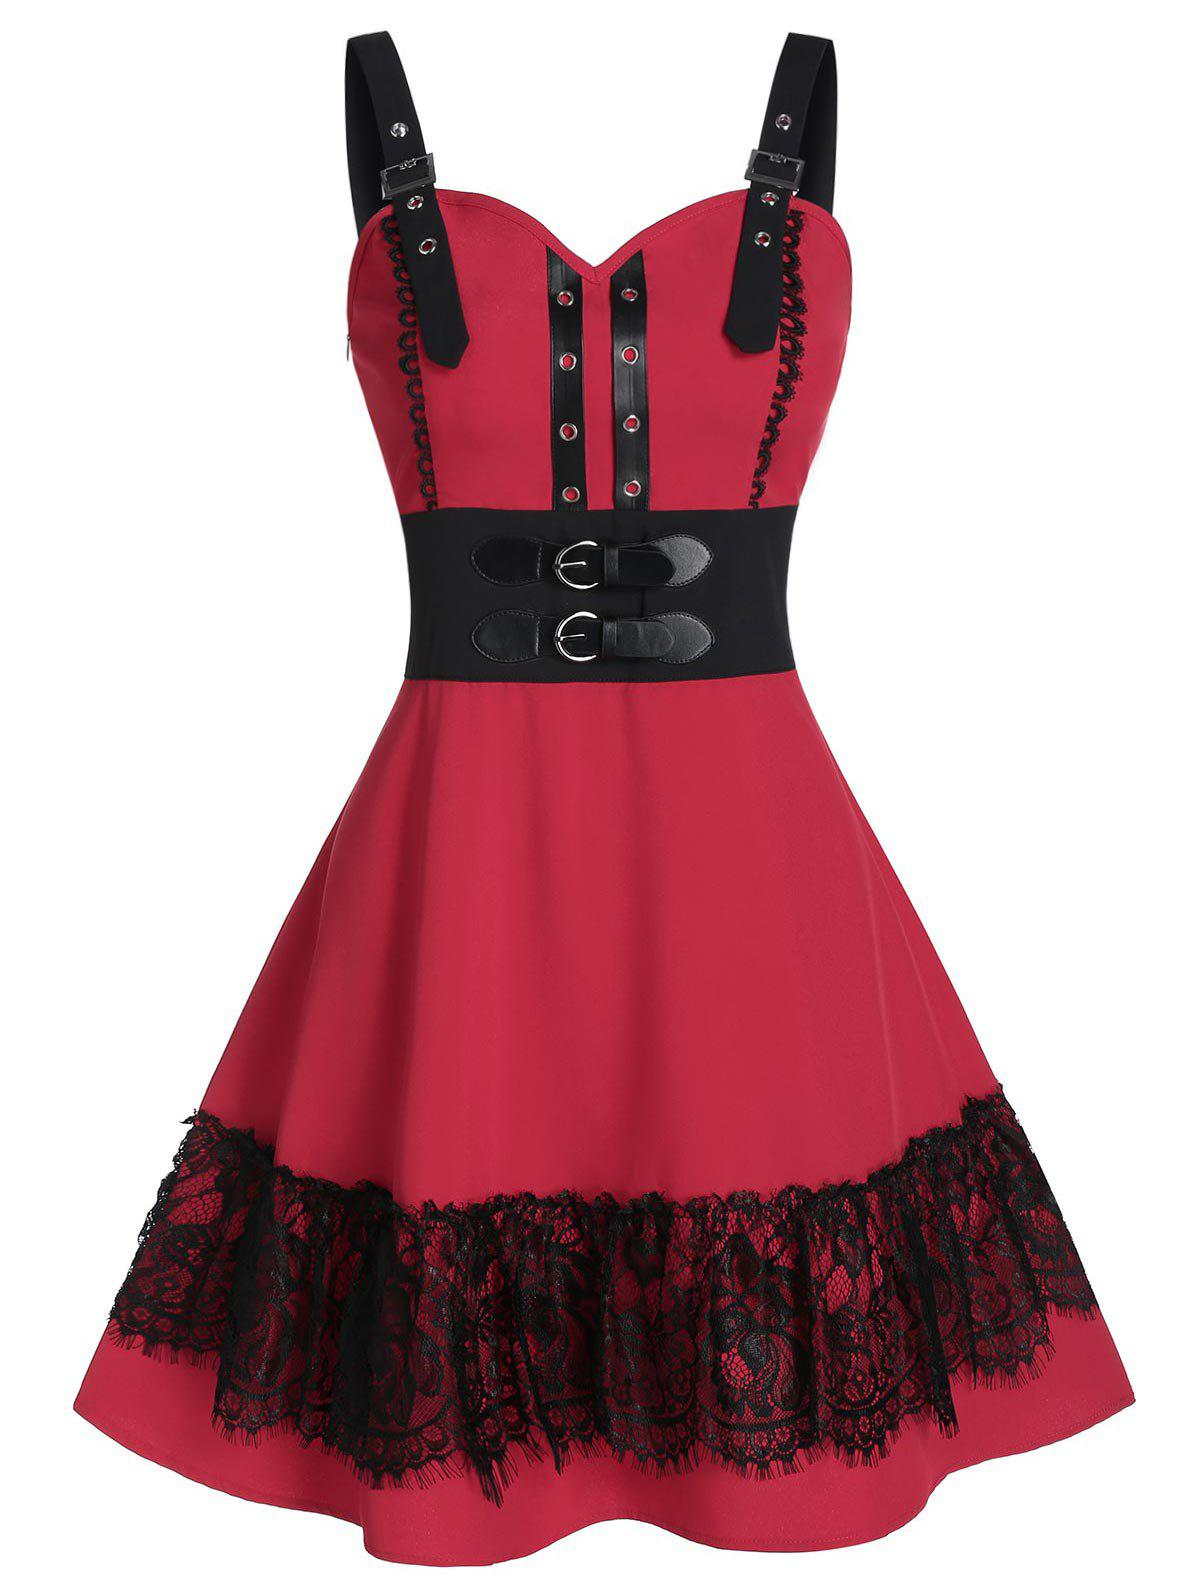 Hot Buckle Grommets Fit and Flare Dress